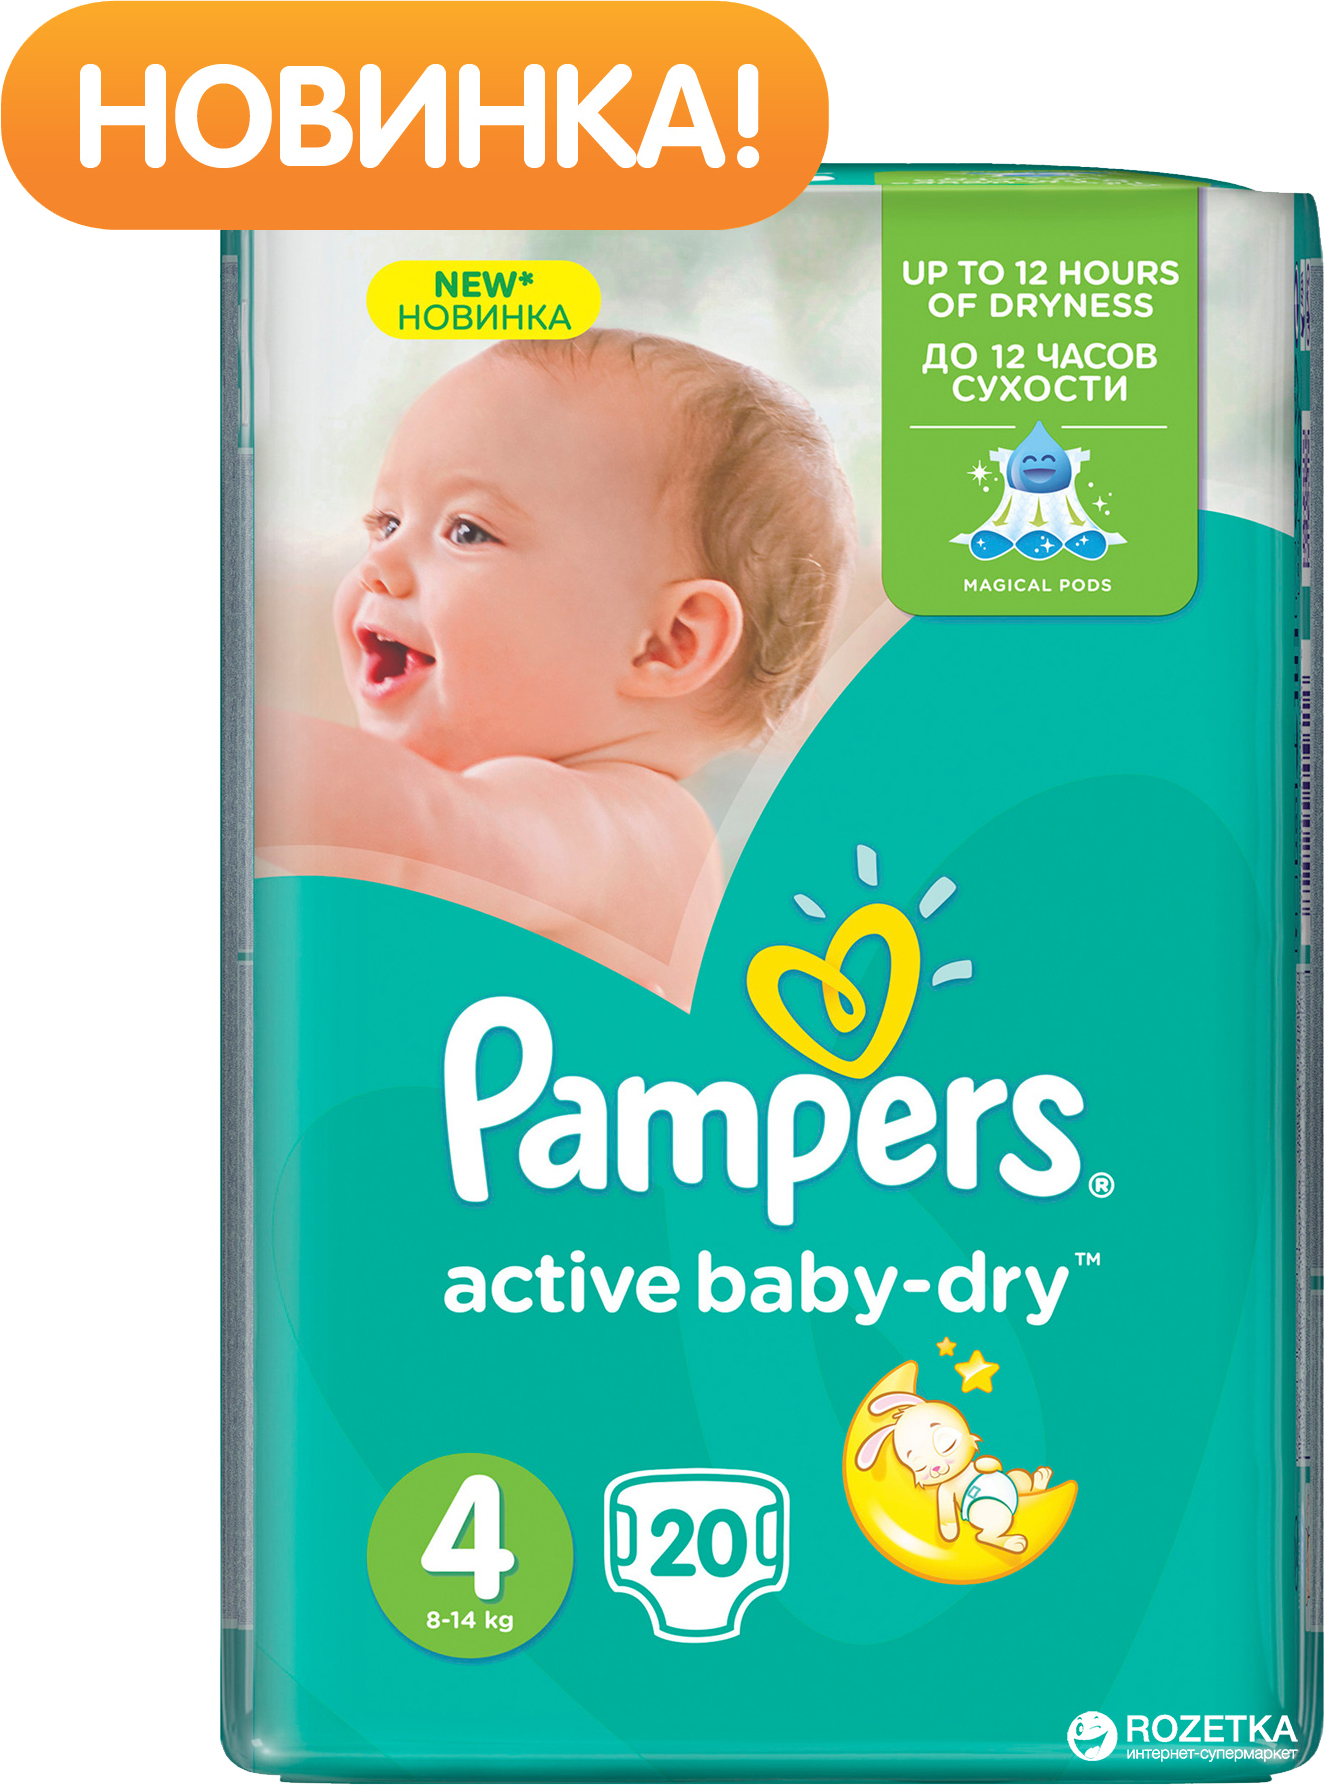 Rozetka.ua   Подгузники Pampers Active Baby-Dry Maxi 8-14 кг, 20 шт ... 8ff3369ded6